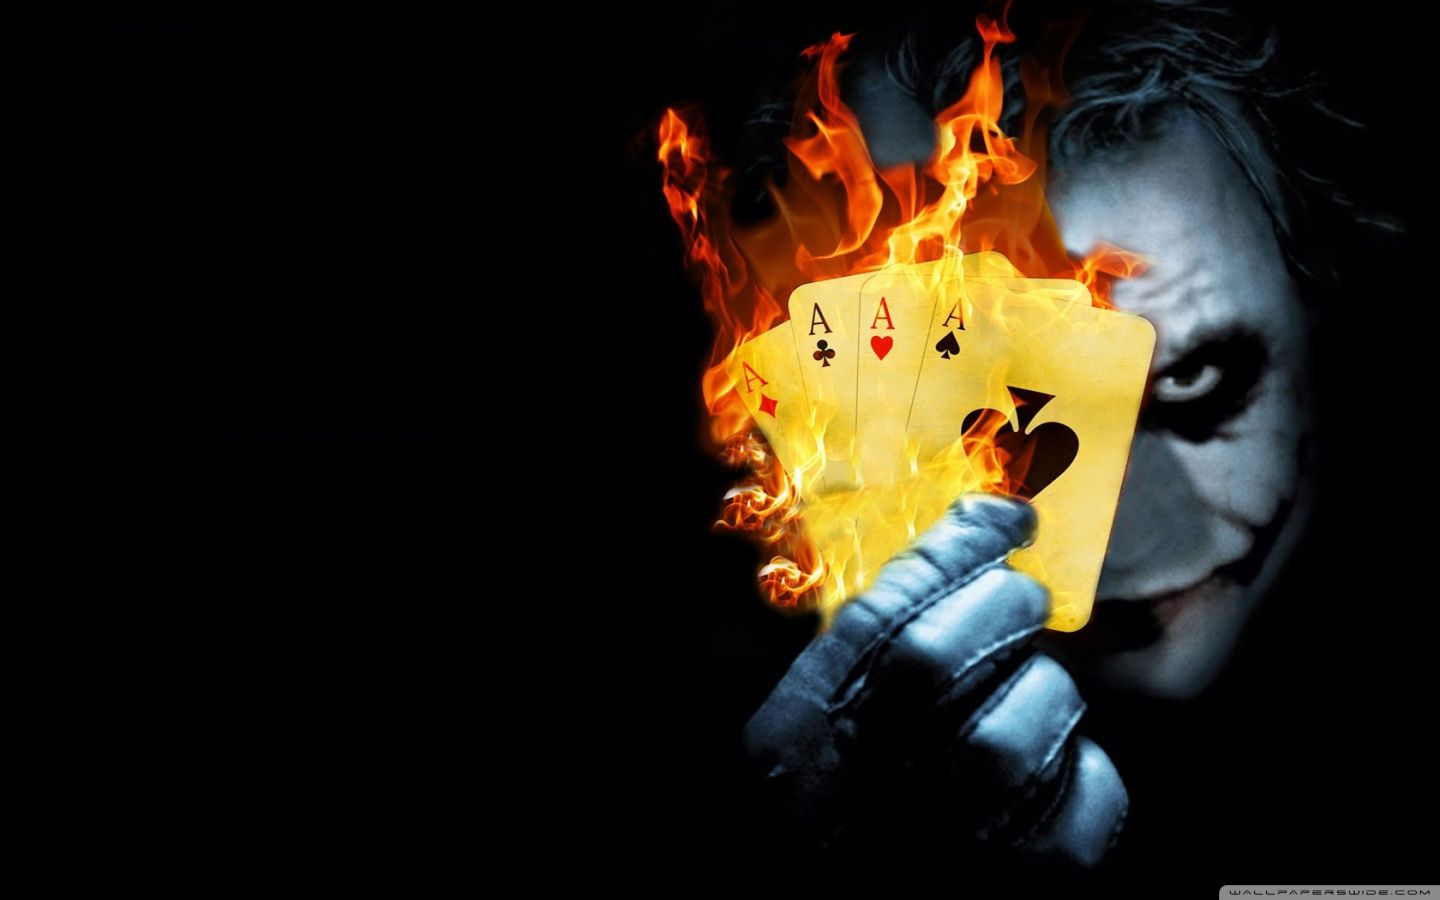 Burning Poker Joker Hd Desktop Wallpaper High Definition Joker Hd Wallpaper Batman Joker Wallpaper Joker Images